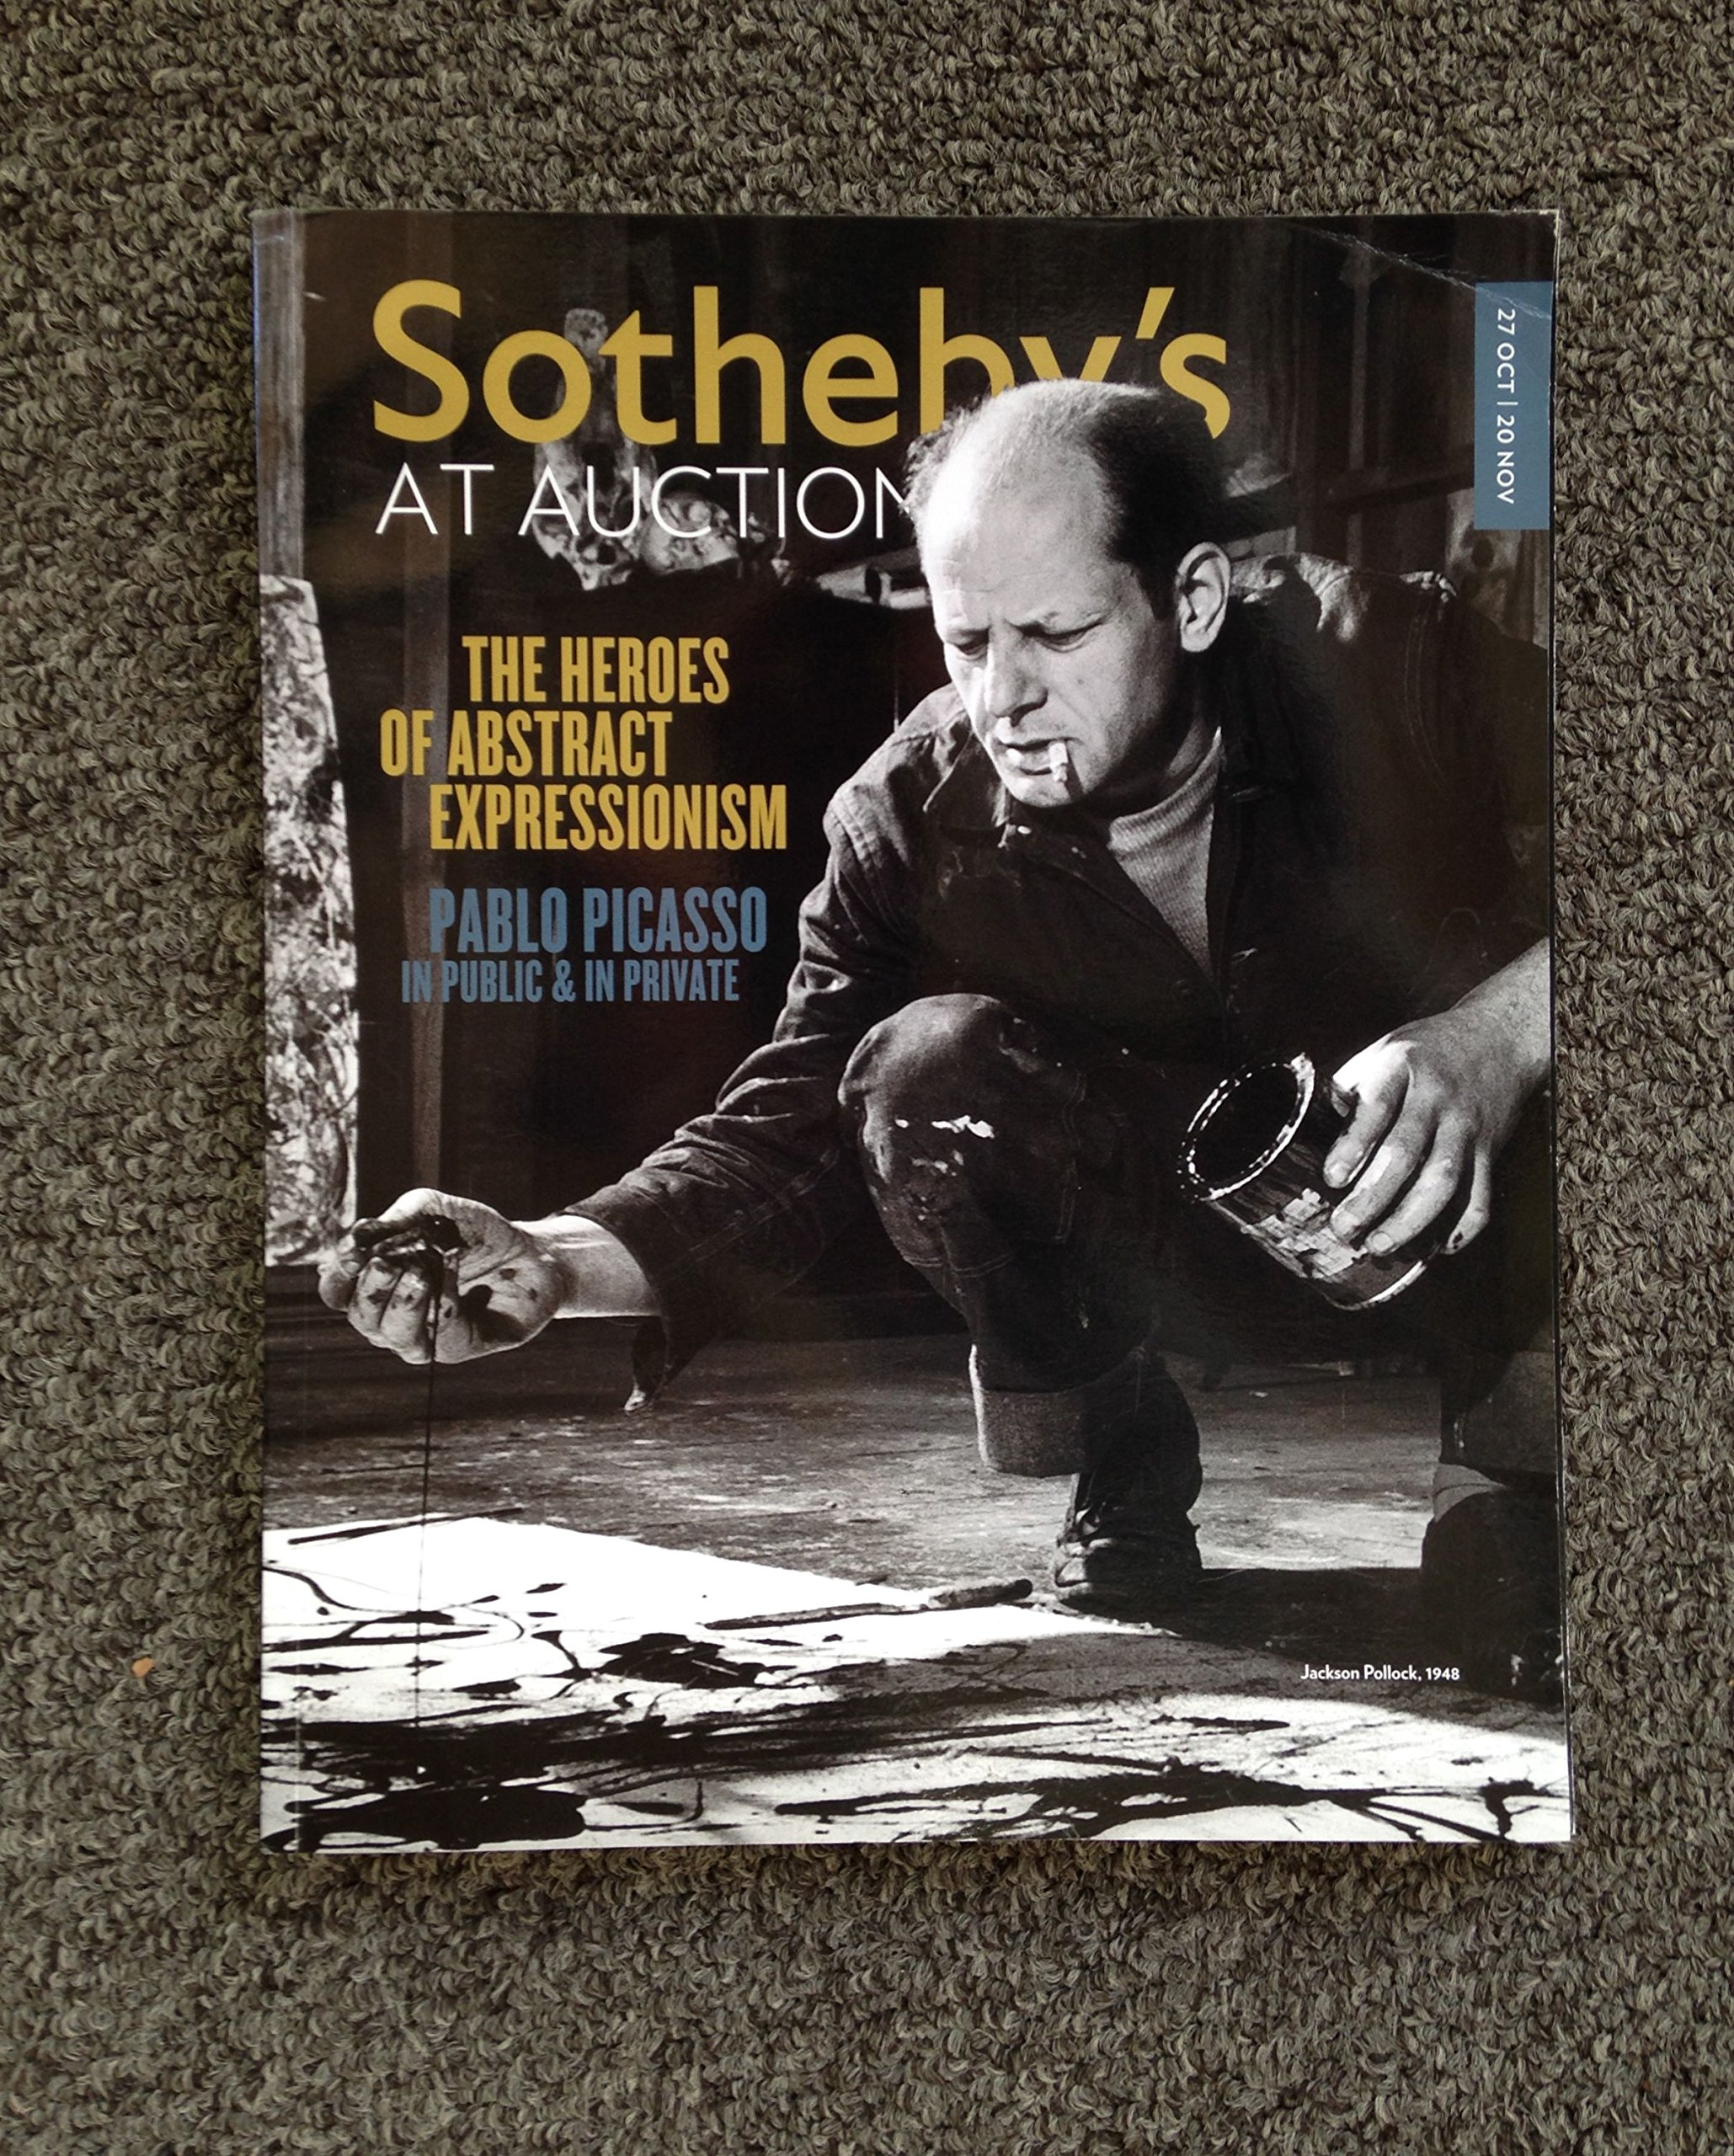 Sotheby's At Auction: Worldwide Highlights, Volume 3 Issue 7, 27 October-20 November 2012 pdf